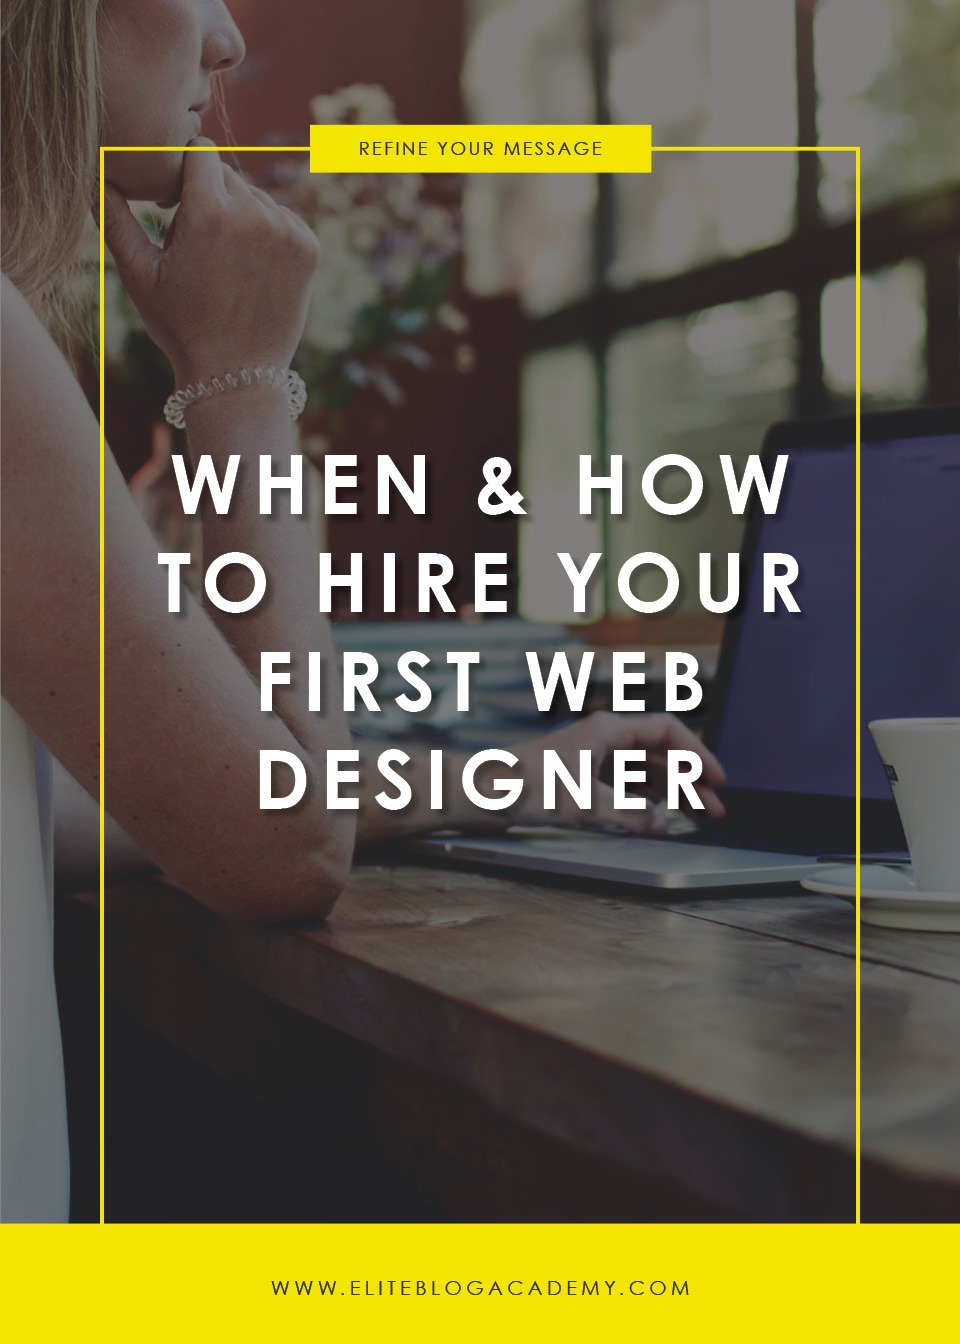 When & How to Hire Your First Web Designer | Elite Blog Academy | How to Blog | Graphic Design | Blogging 101 | How to Start a Blog | How to Hire a Graphic Designer